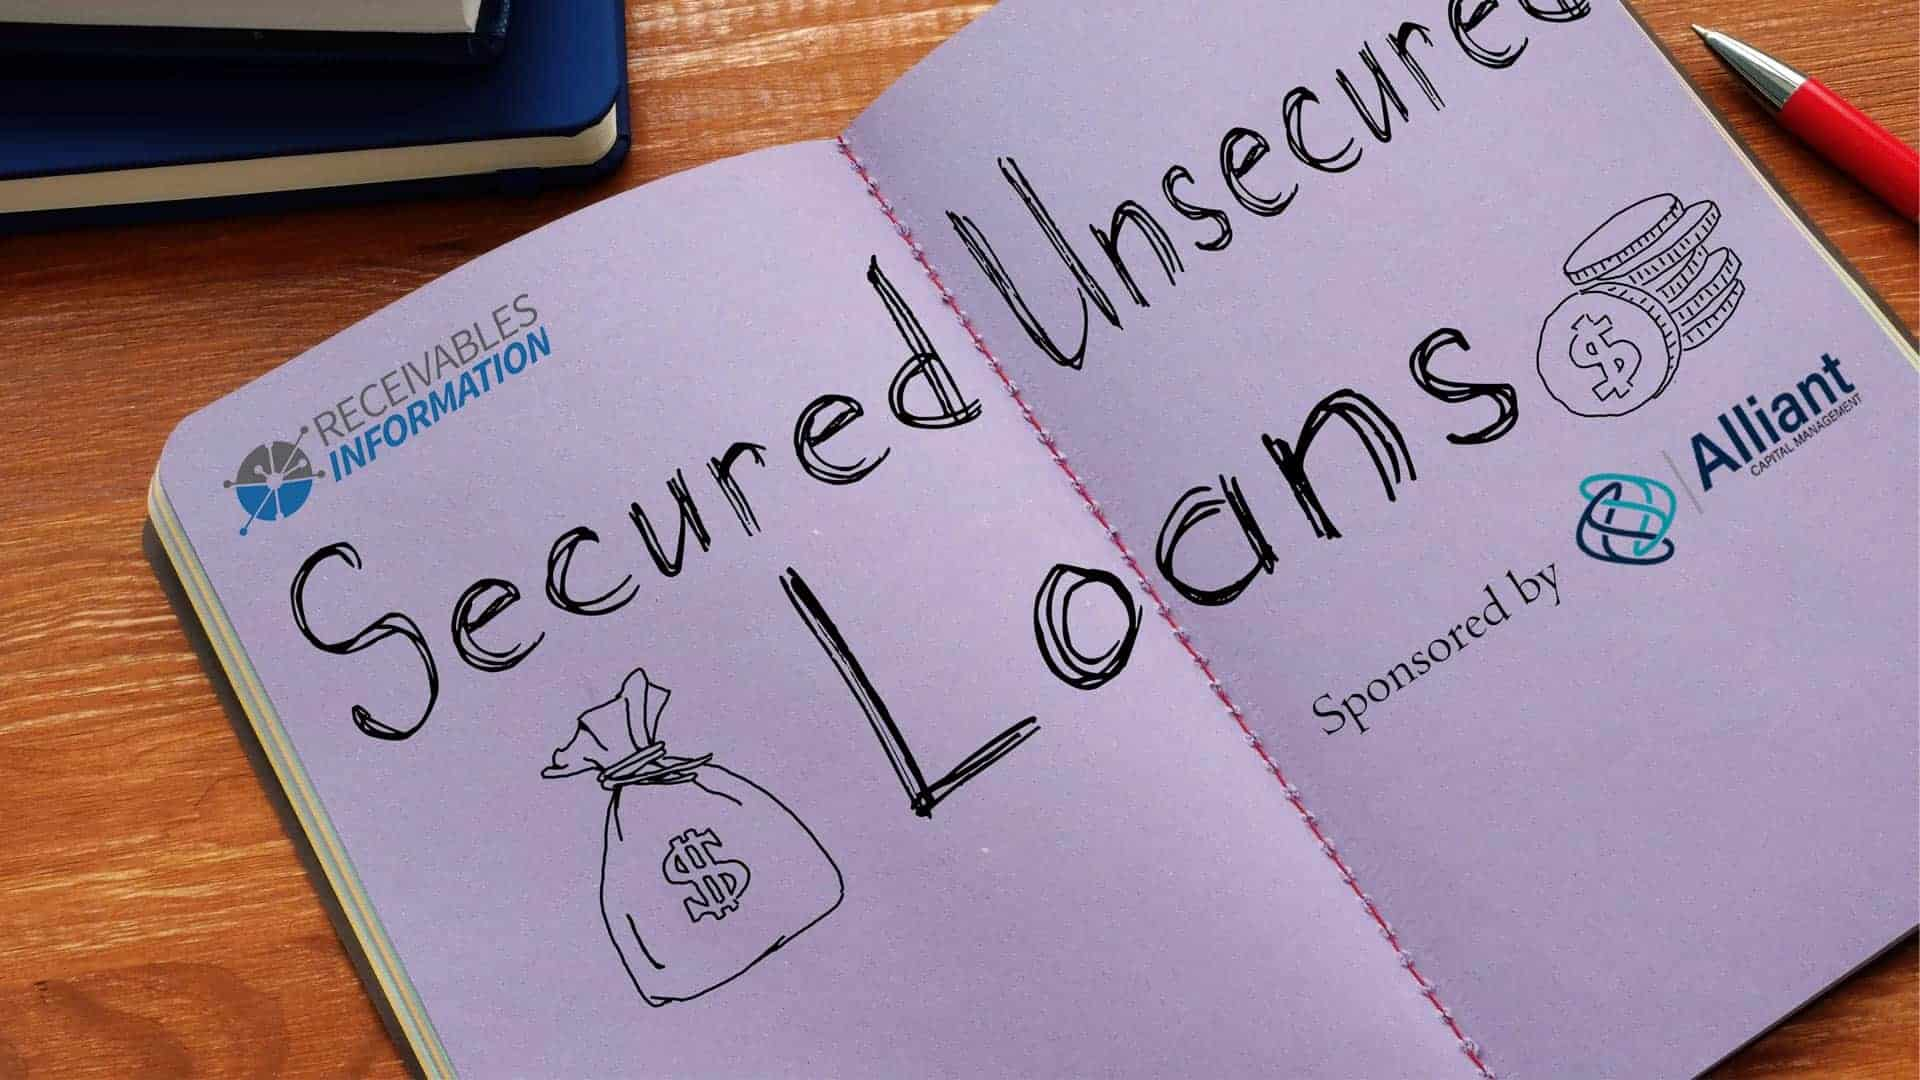 A receivables information guide which has all the information regarding secured and unsecured loans